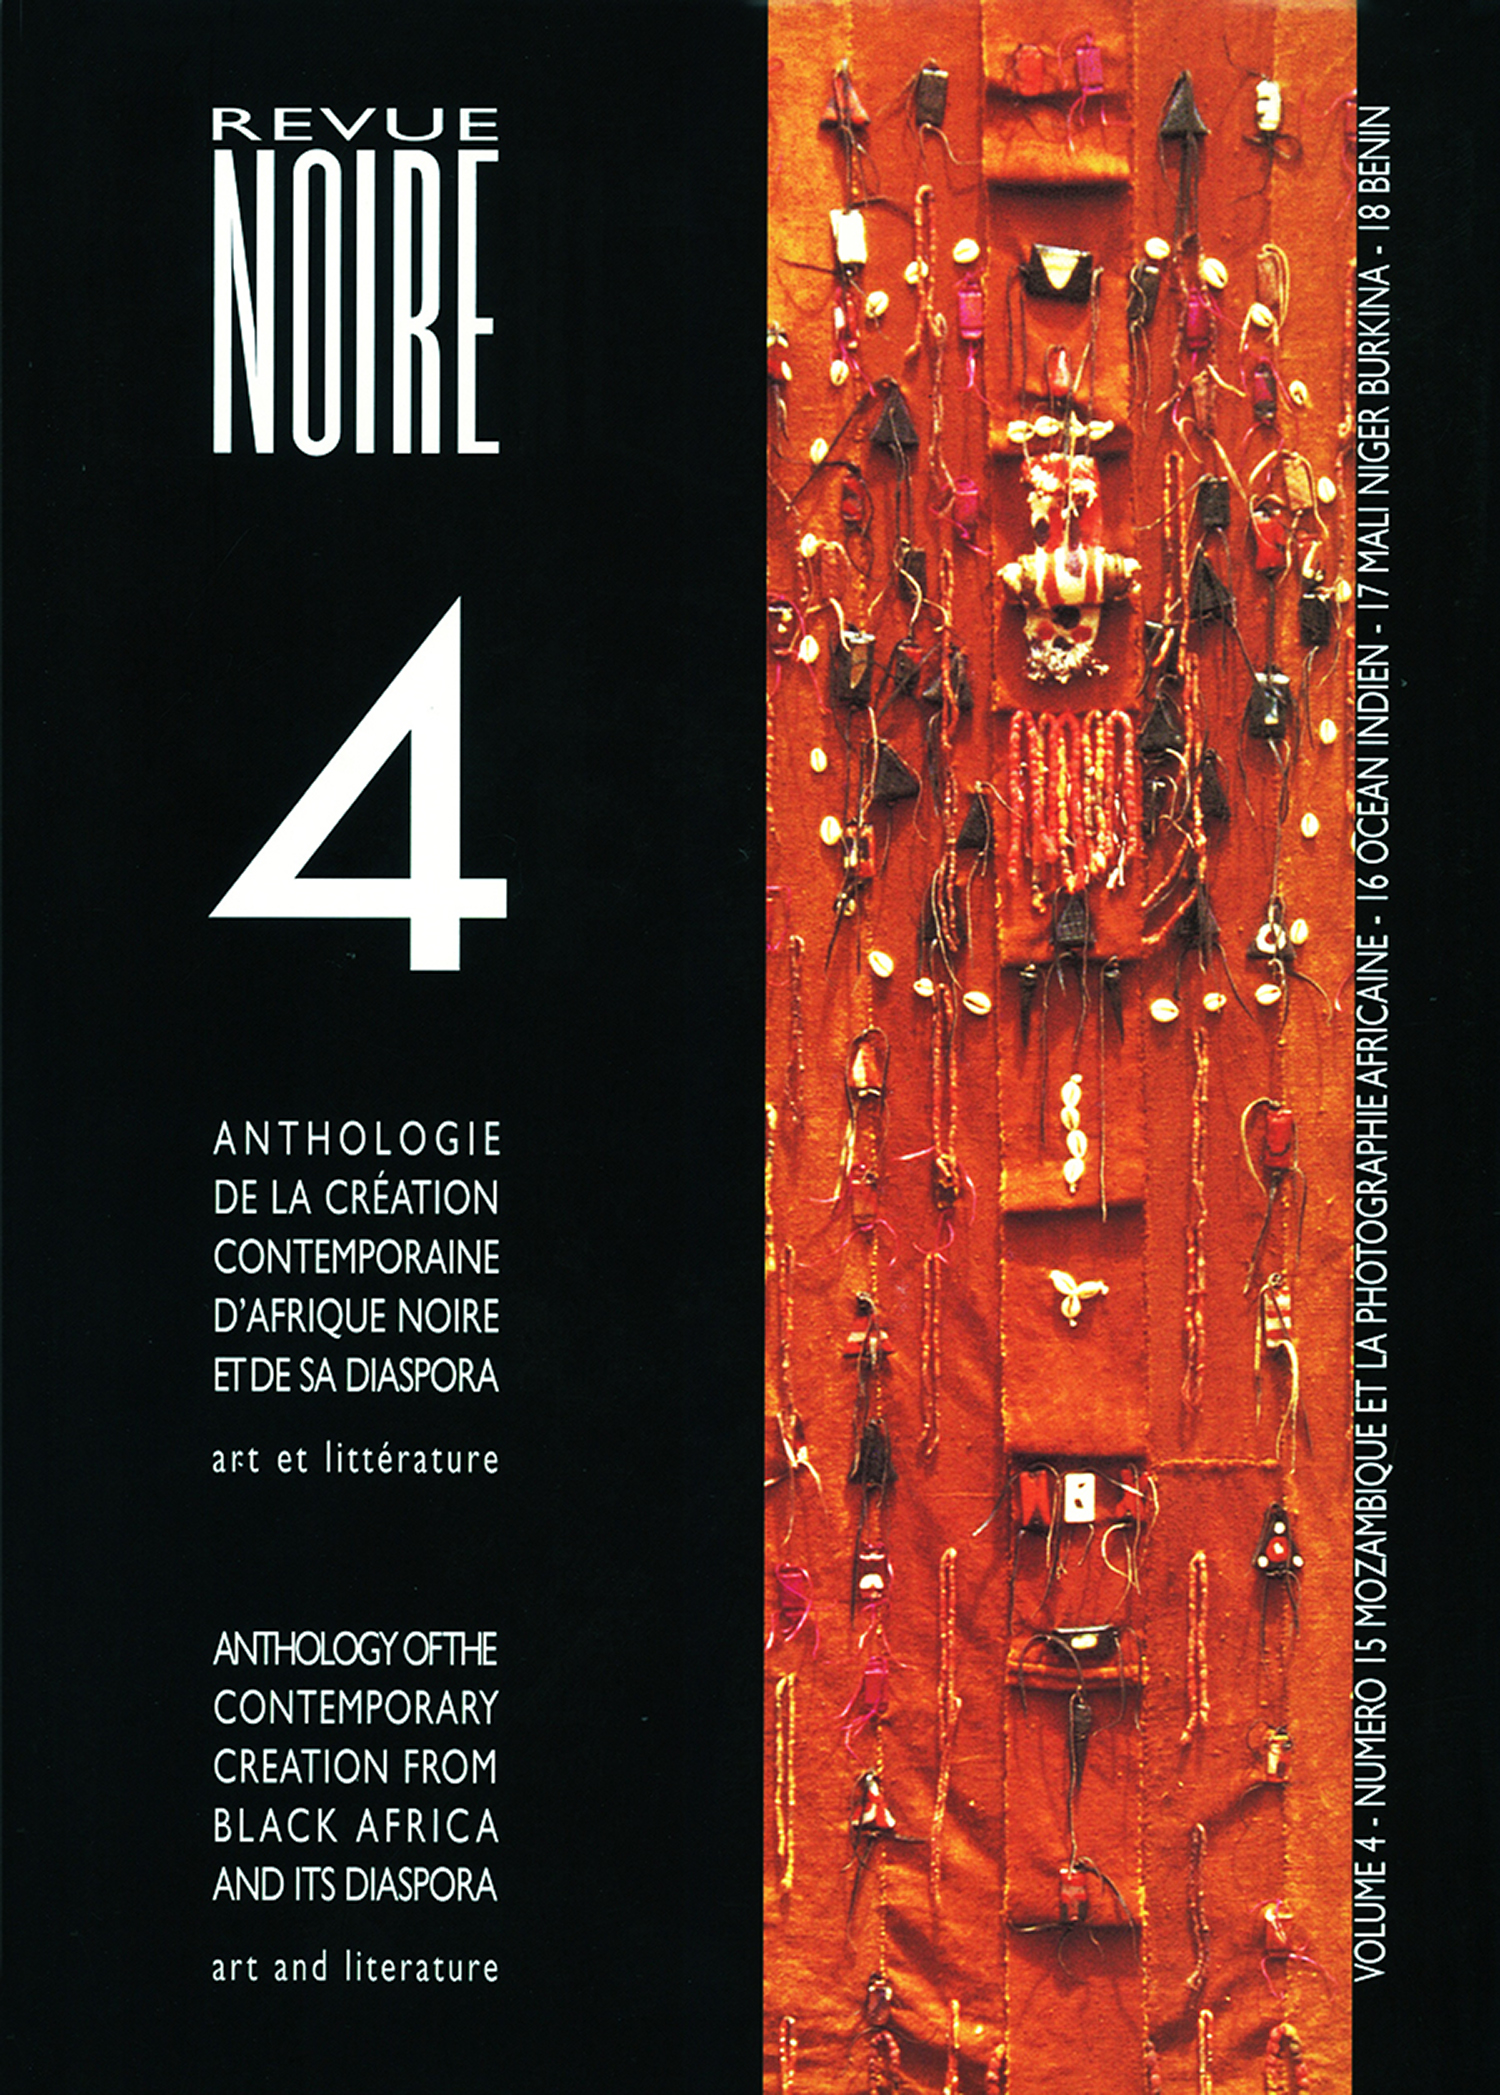 Book 'Anthologie Revue Noire Magazine Vol. 04' issues 15 to 18